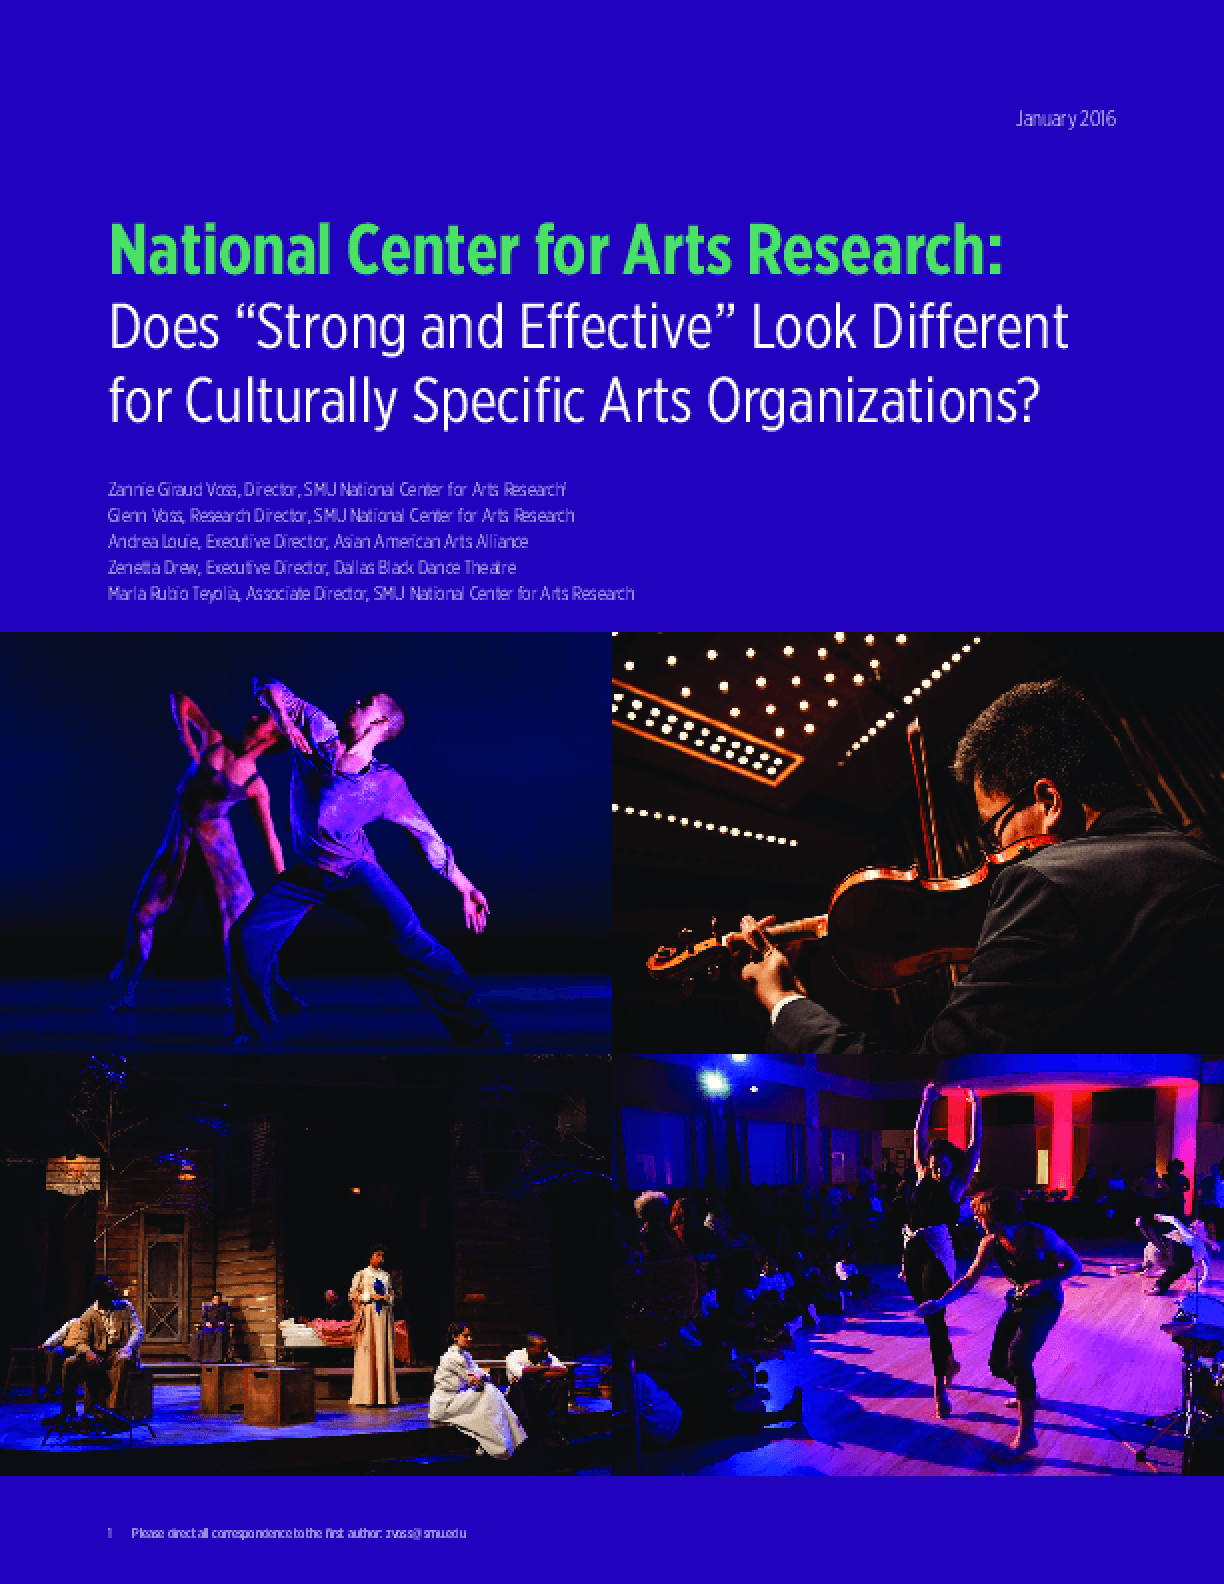 Does Strong and Effective Look Different for Culturally Specific Arts Organizations?